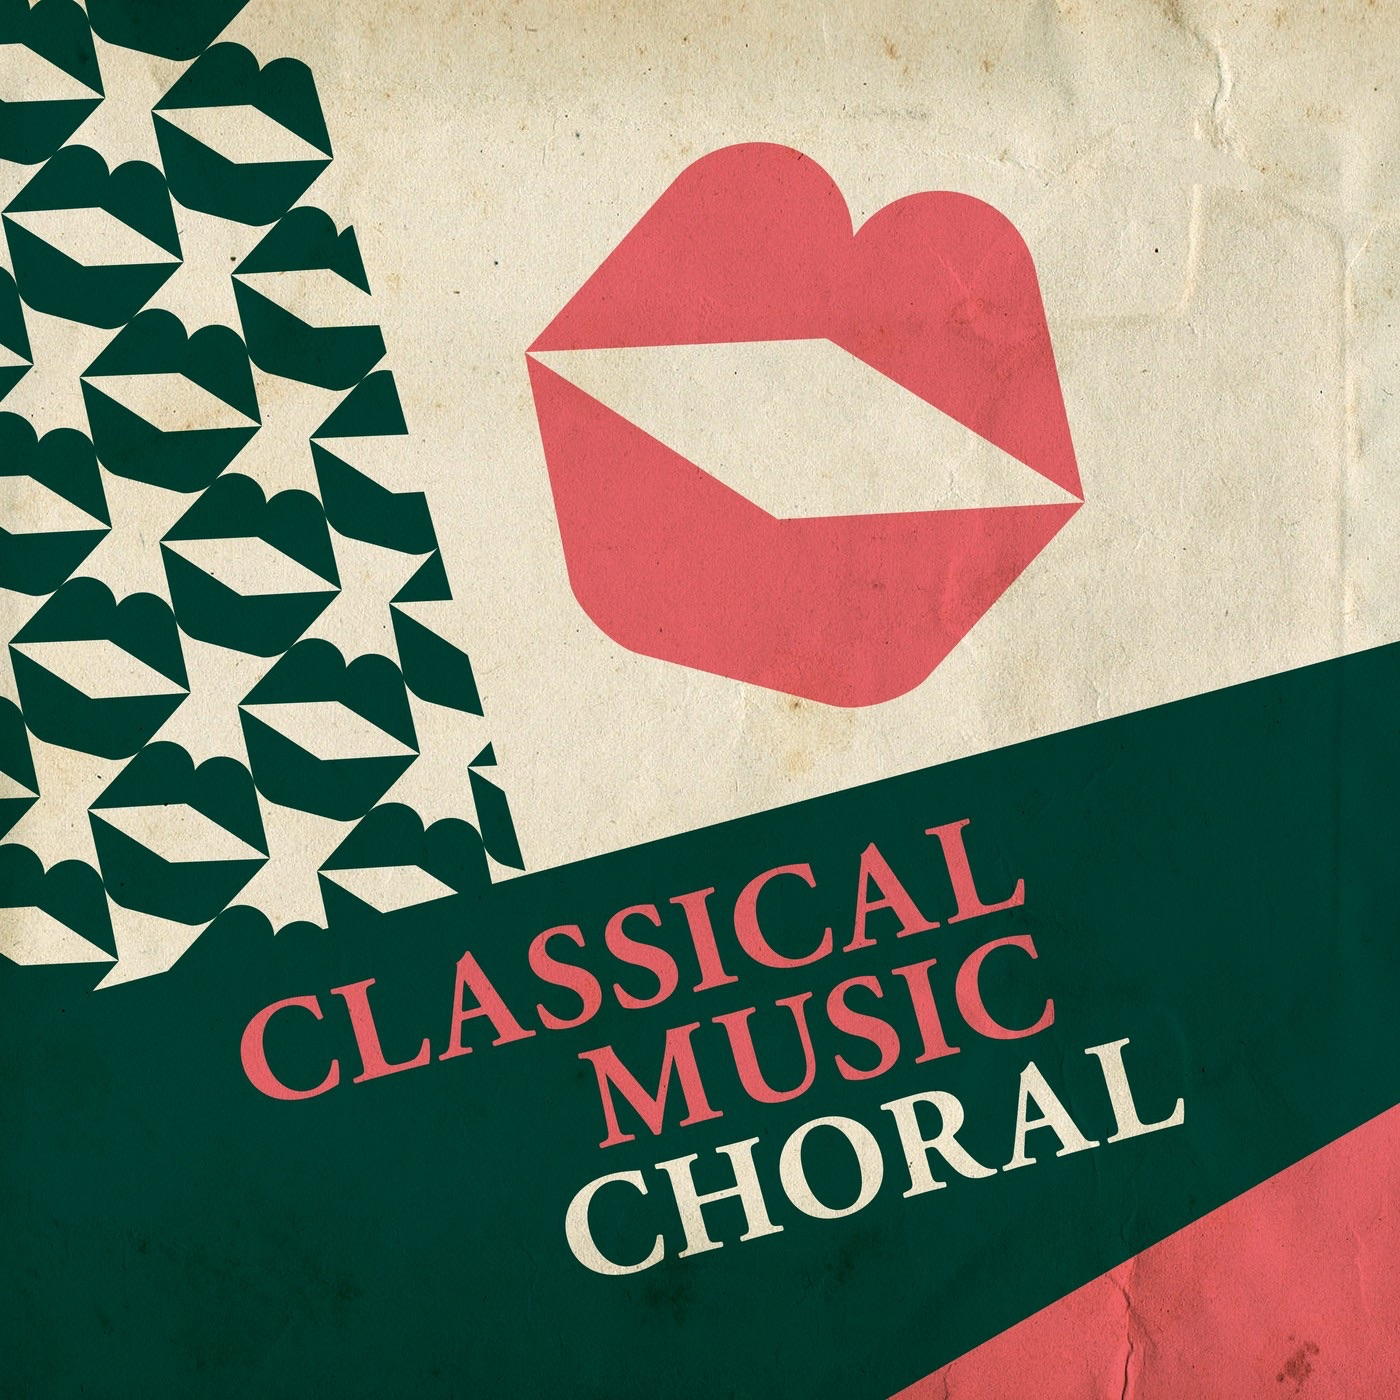 Classical Music - Choral